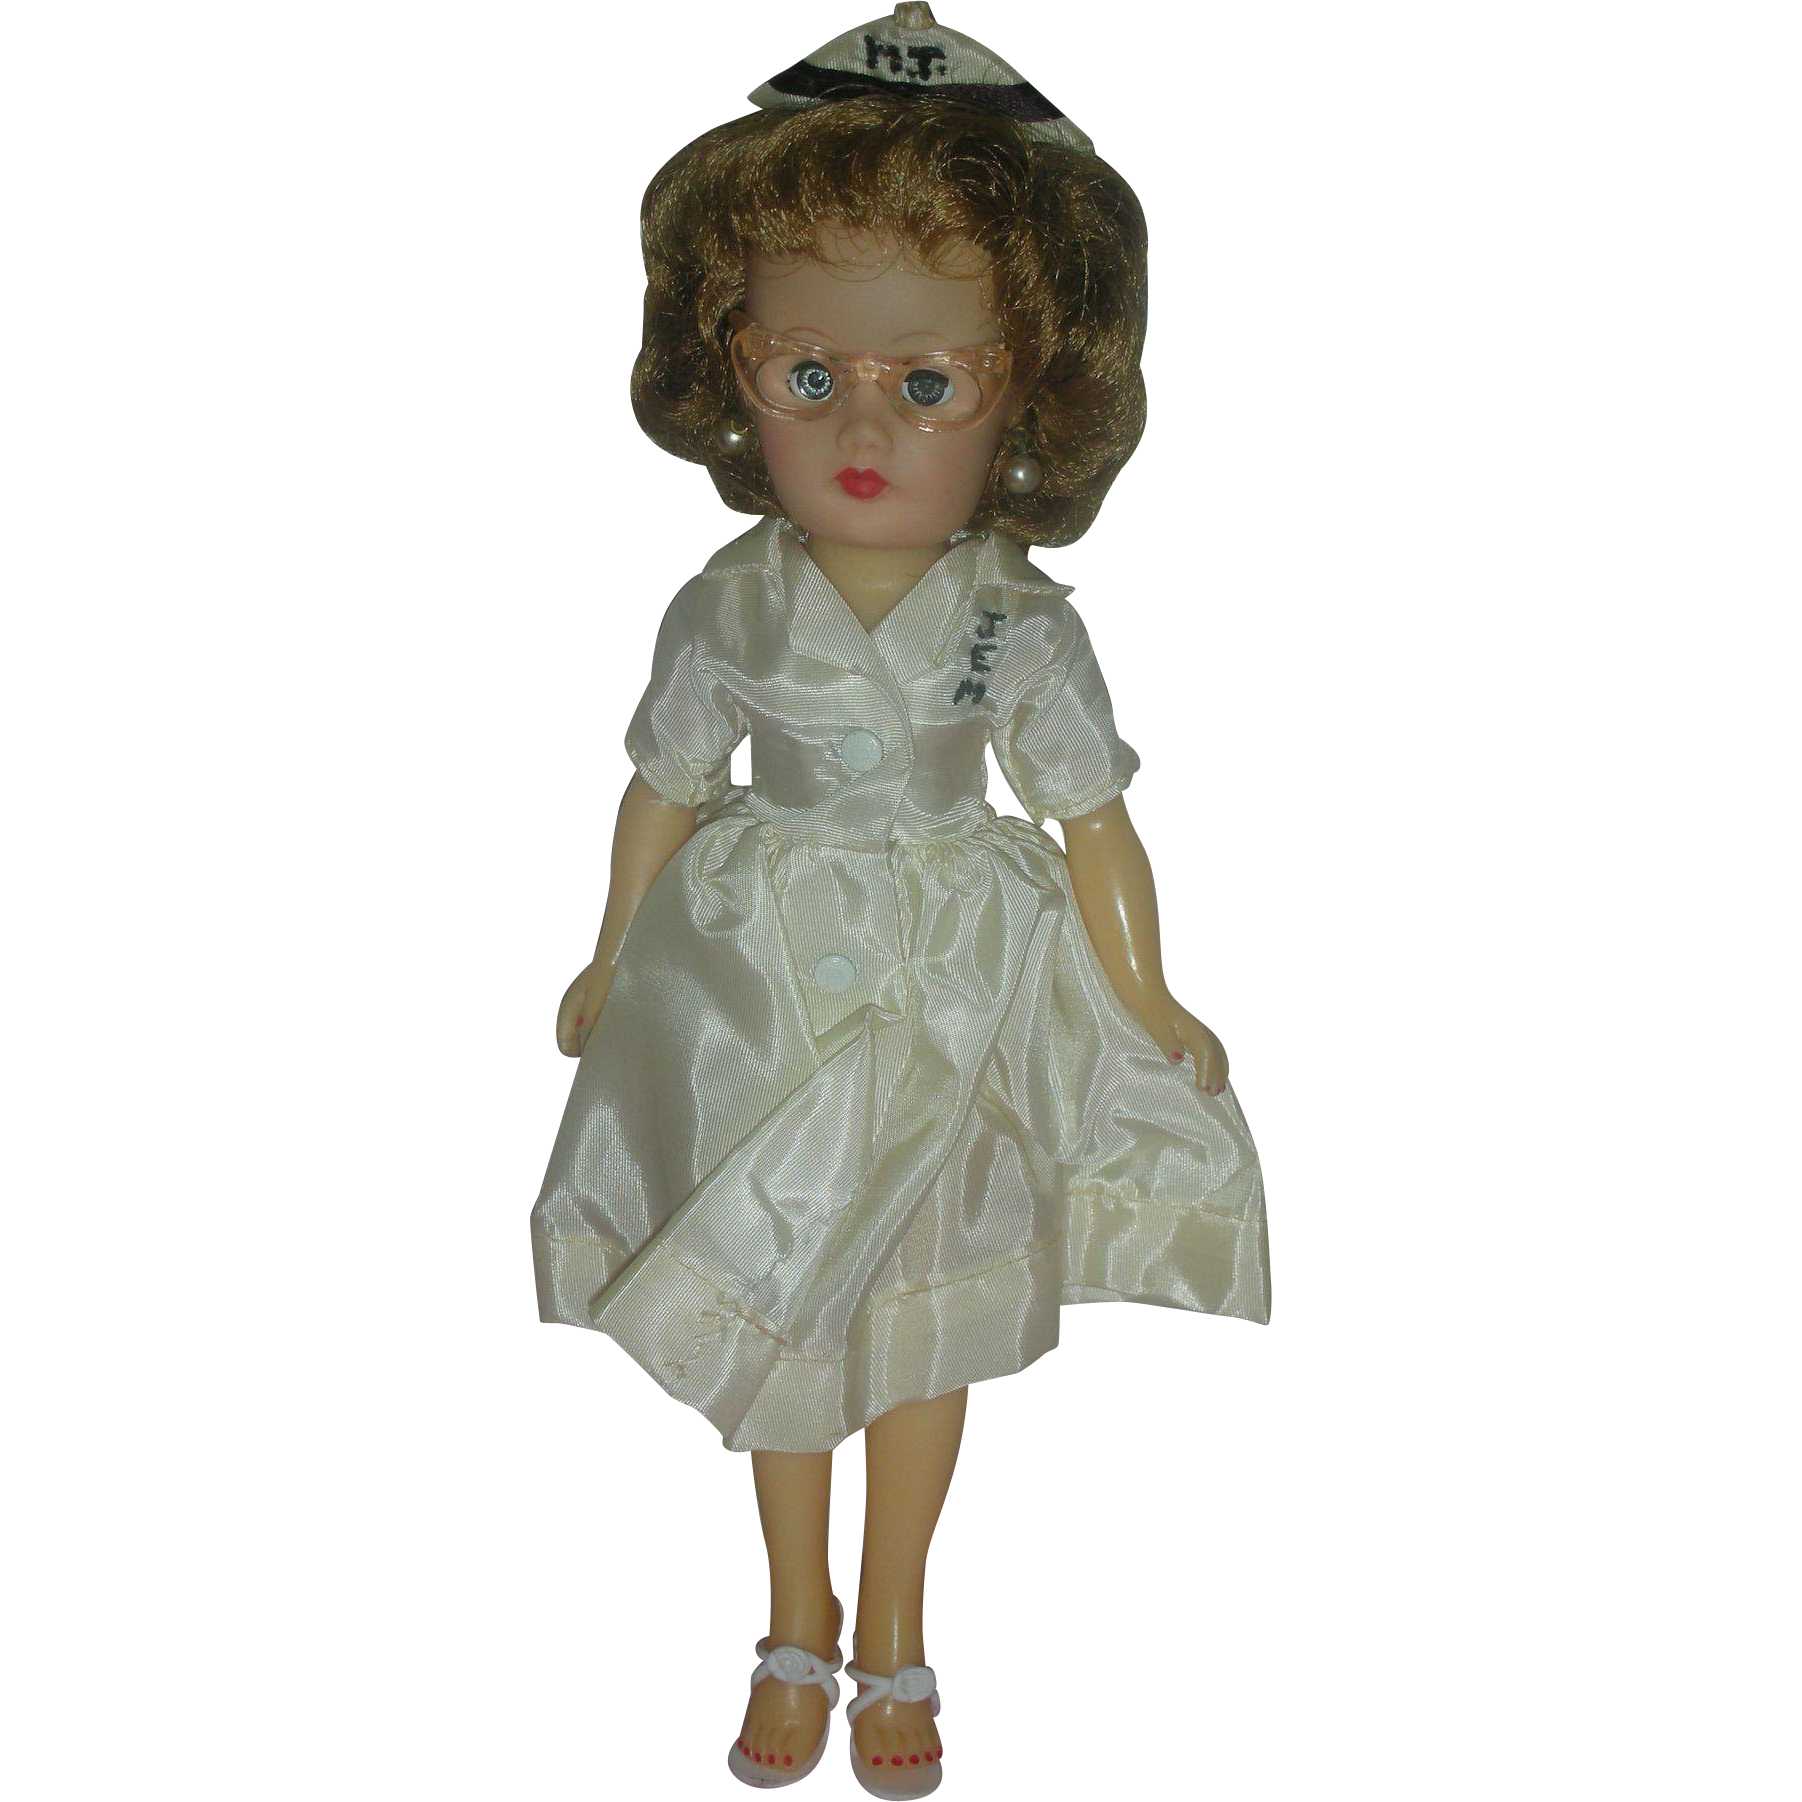 Vintage Circle P Miss Coty Fashion Nurse Doll 10.5 inch 1950's Miss Revlon Type RN Dolls